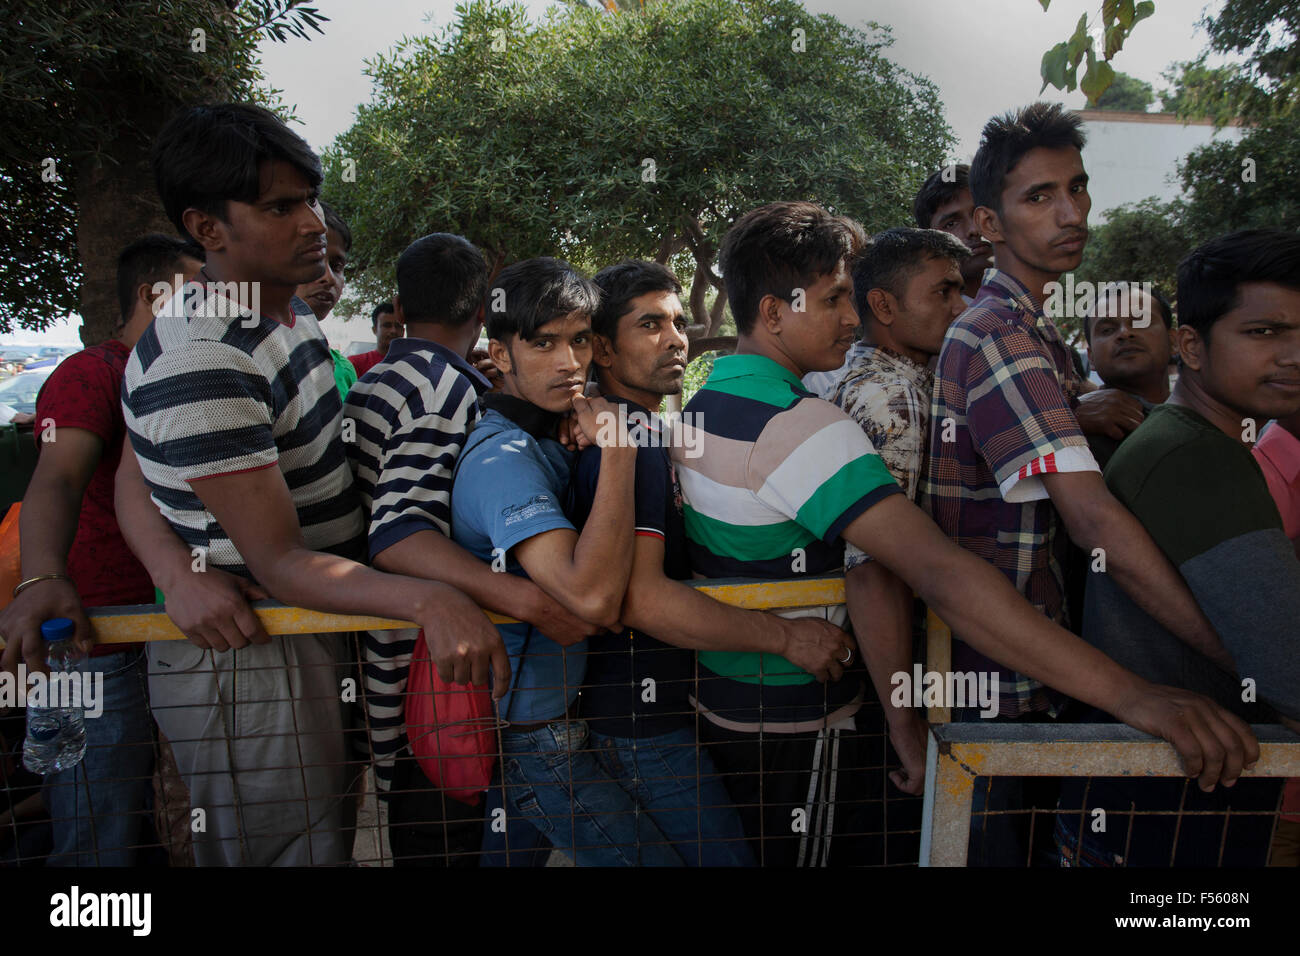 Obtaining asylum requires a long wait at the Police station. hundreds of refugees stand their numbers to be called - Stock Image